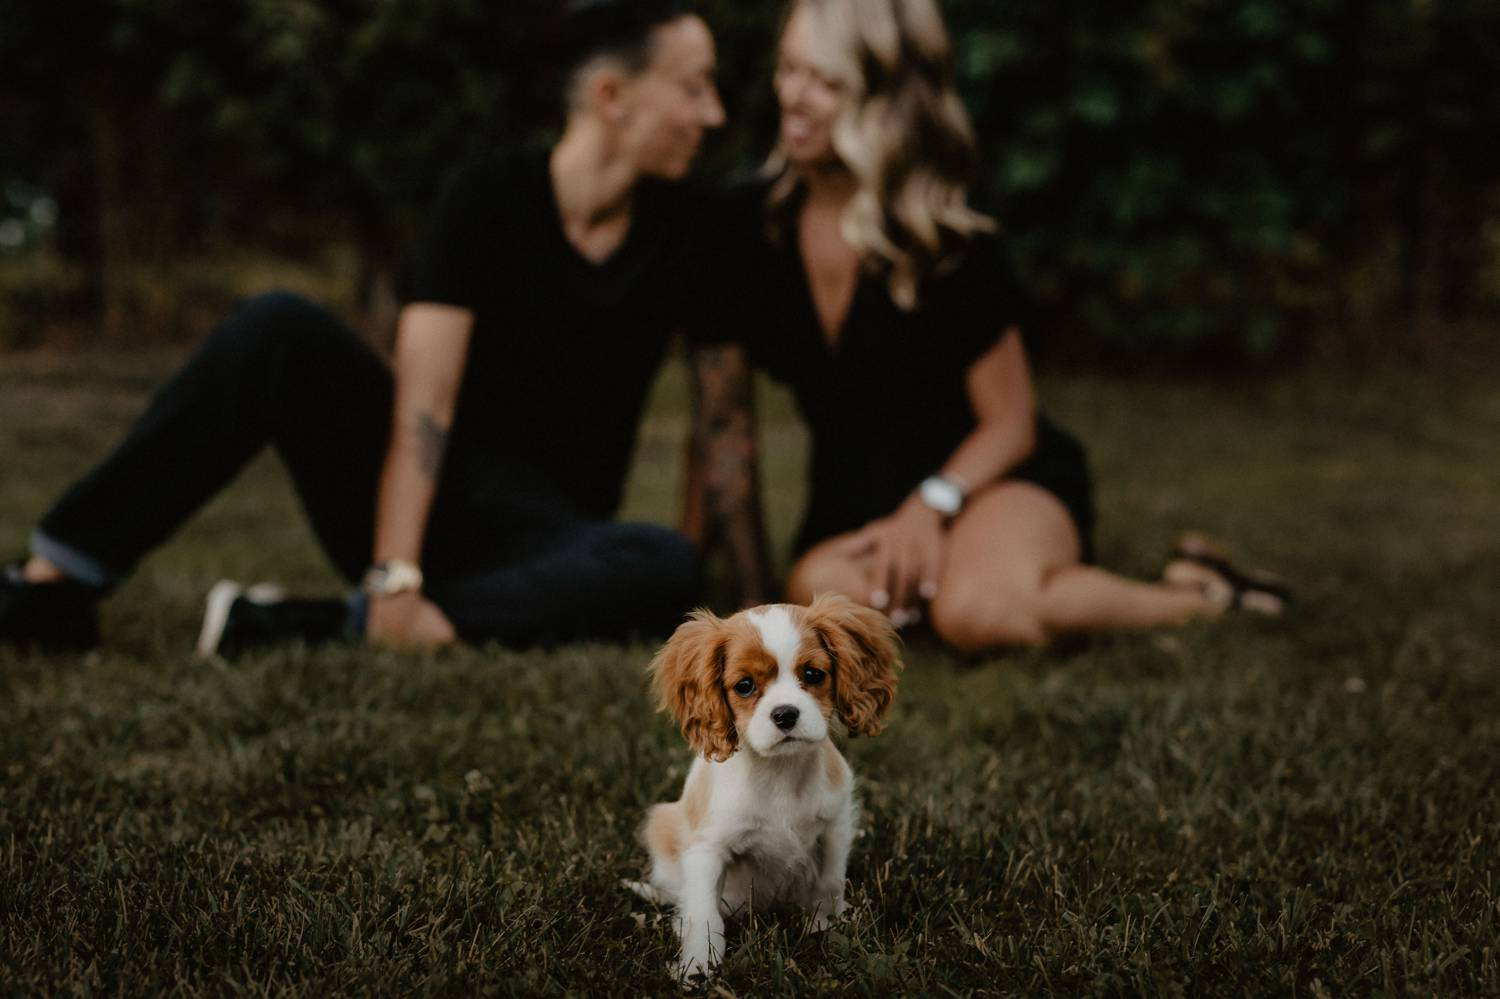 A queer couple sits on the grass in the background as the camera focuses on their spaniel puppy who sits in the foreground